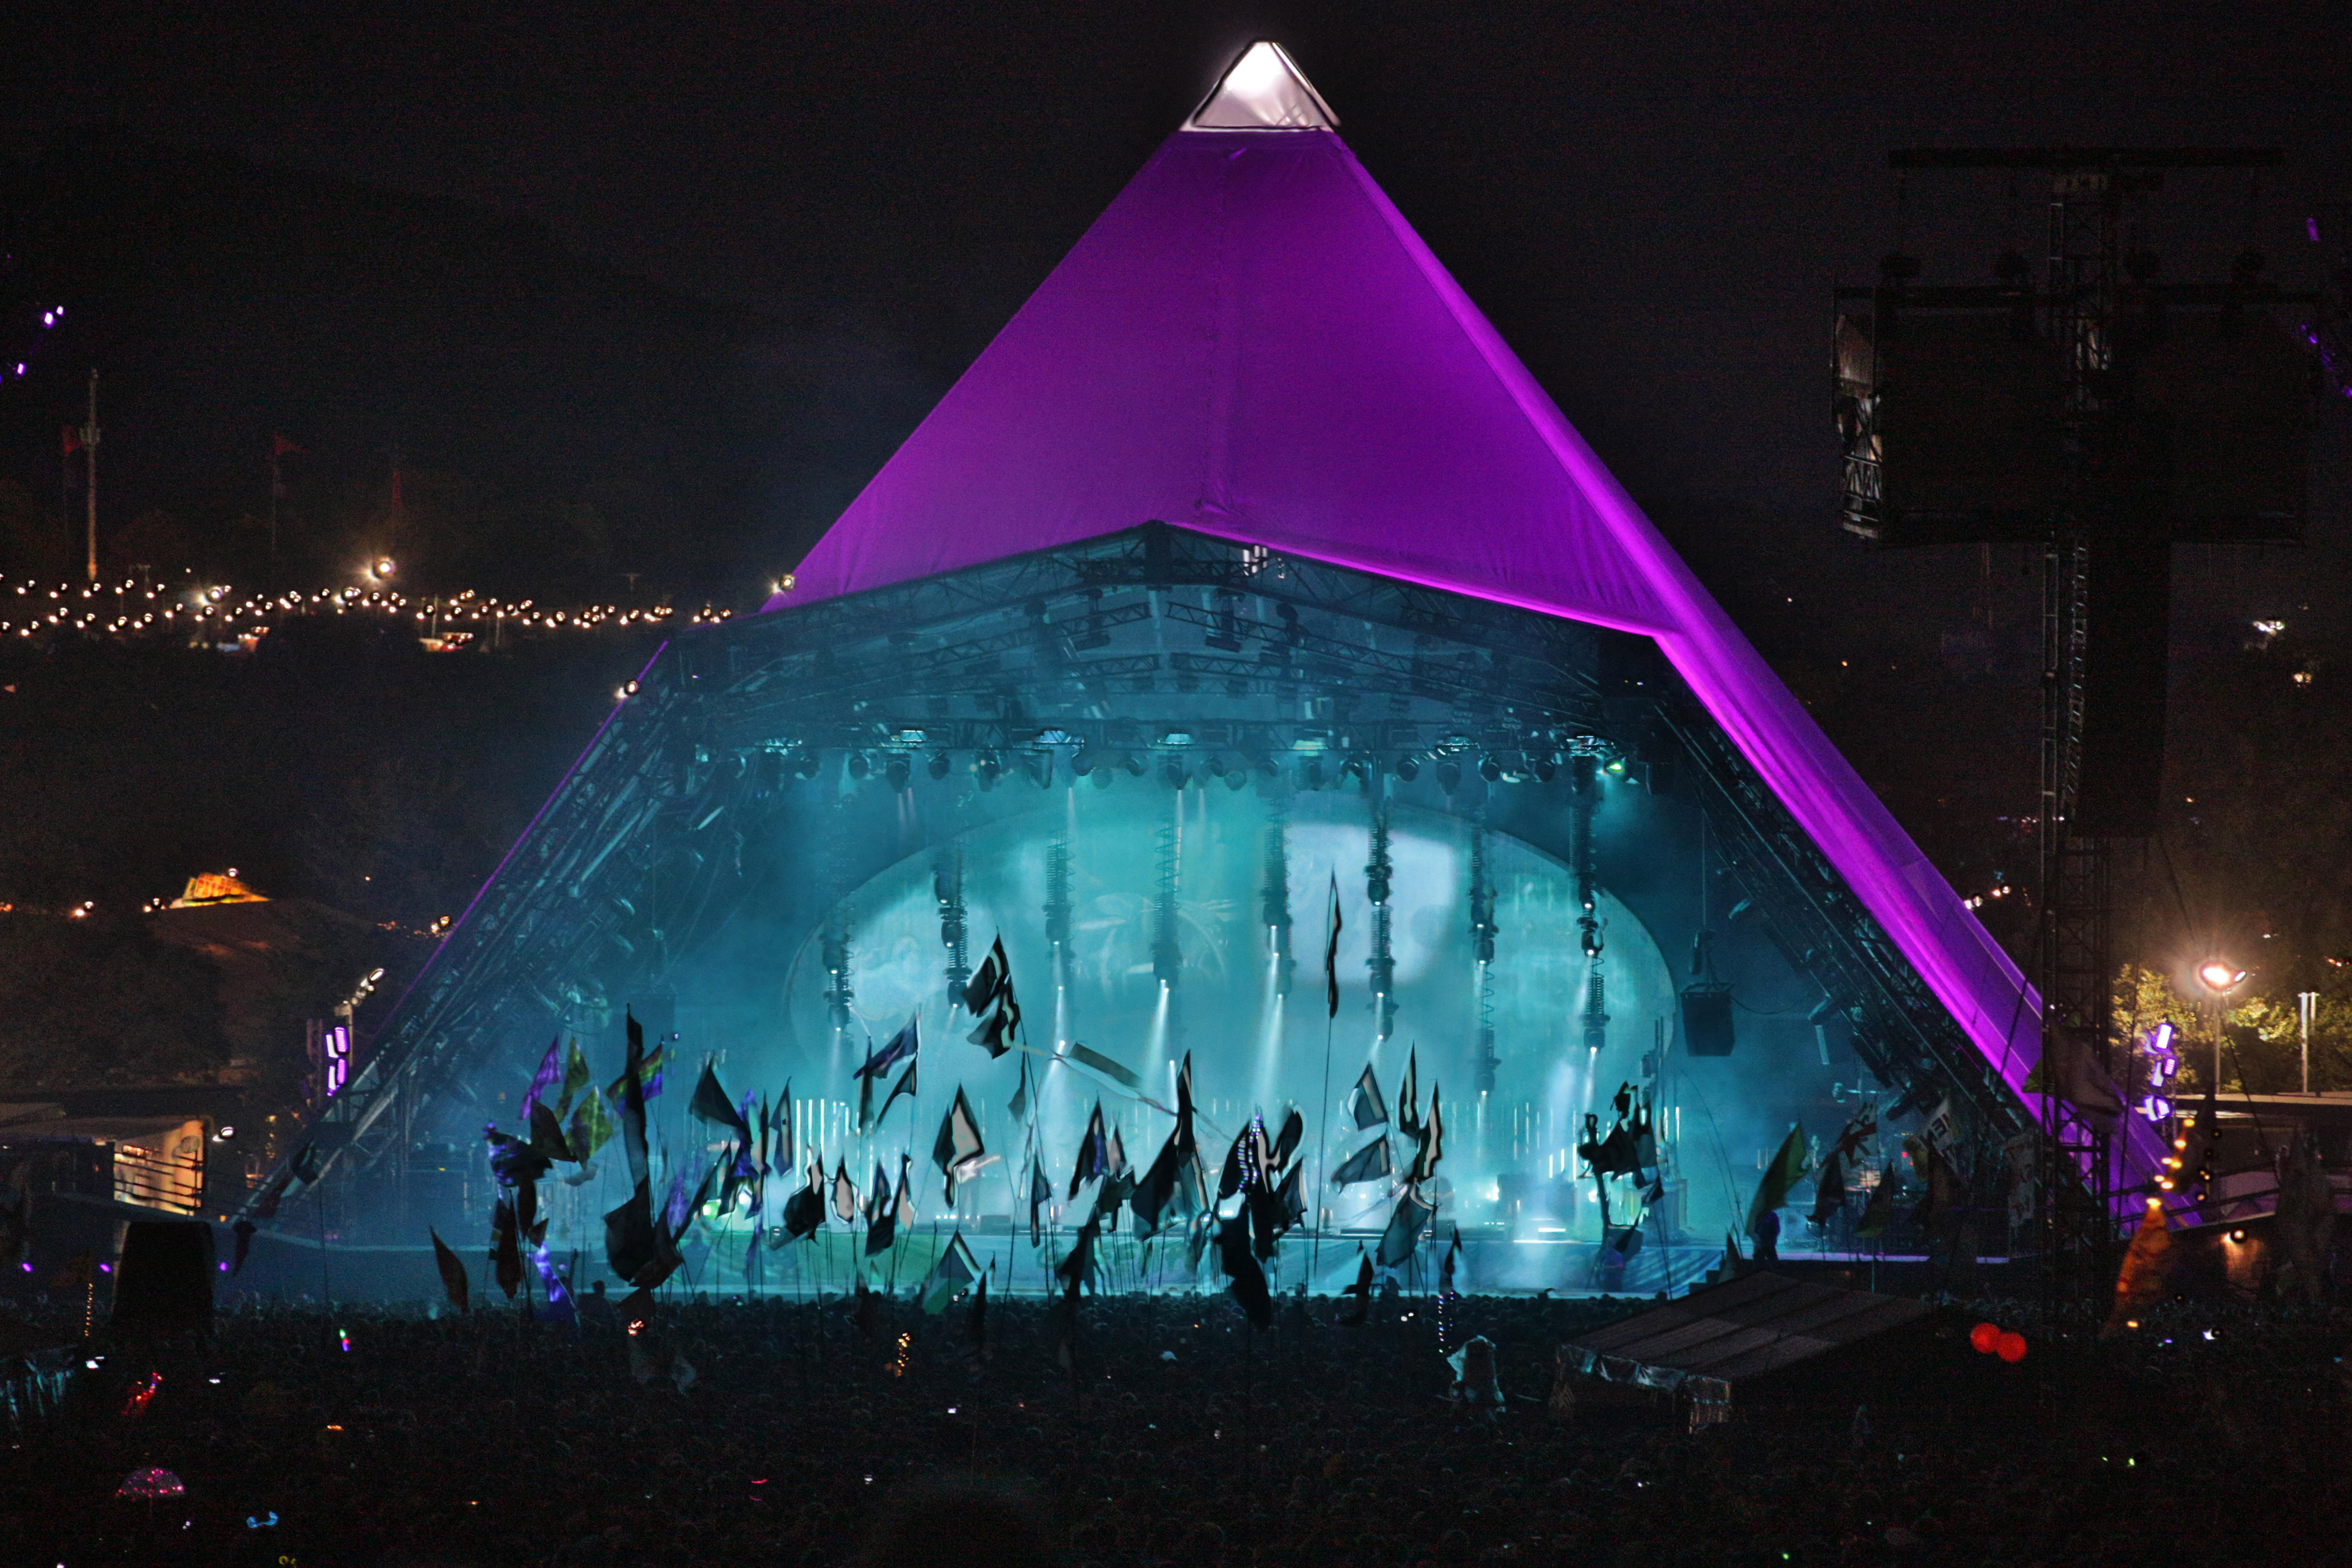 Glastonbury, UK. 23rd June, 2017. A view of the Pyramid stage during Radiohead's headline performance on Day 1 of the 2017 Glastonbury Festival at Worthy Farm in Somerset. Photo date: Friday, June 23, 2017. Credit: Roger Garfield/Alamy Live News